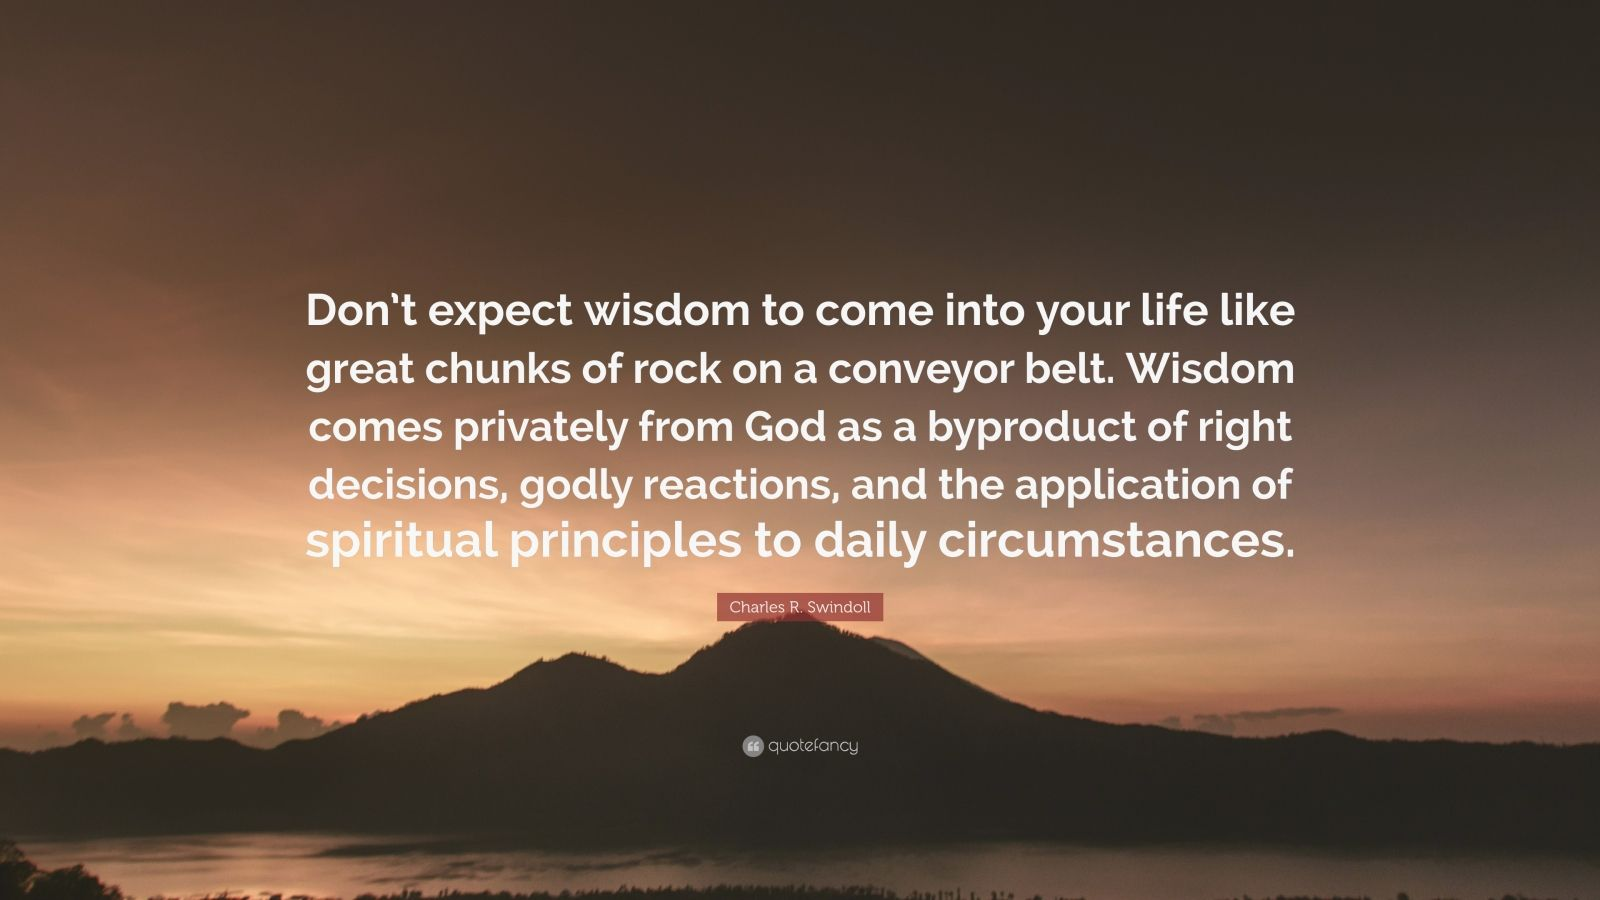 "Charles R. Swindoll Quote: ""Don't expect wisdom to come into your life like great chunks of rock on a conveyor belt. Wisdom comes privately from God as a byproduct of right decisions, godly reactions, and the application of spiritual principles to daily circumstances."""